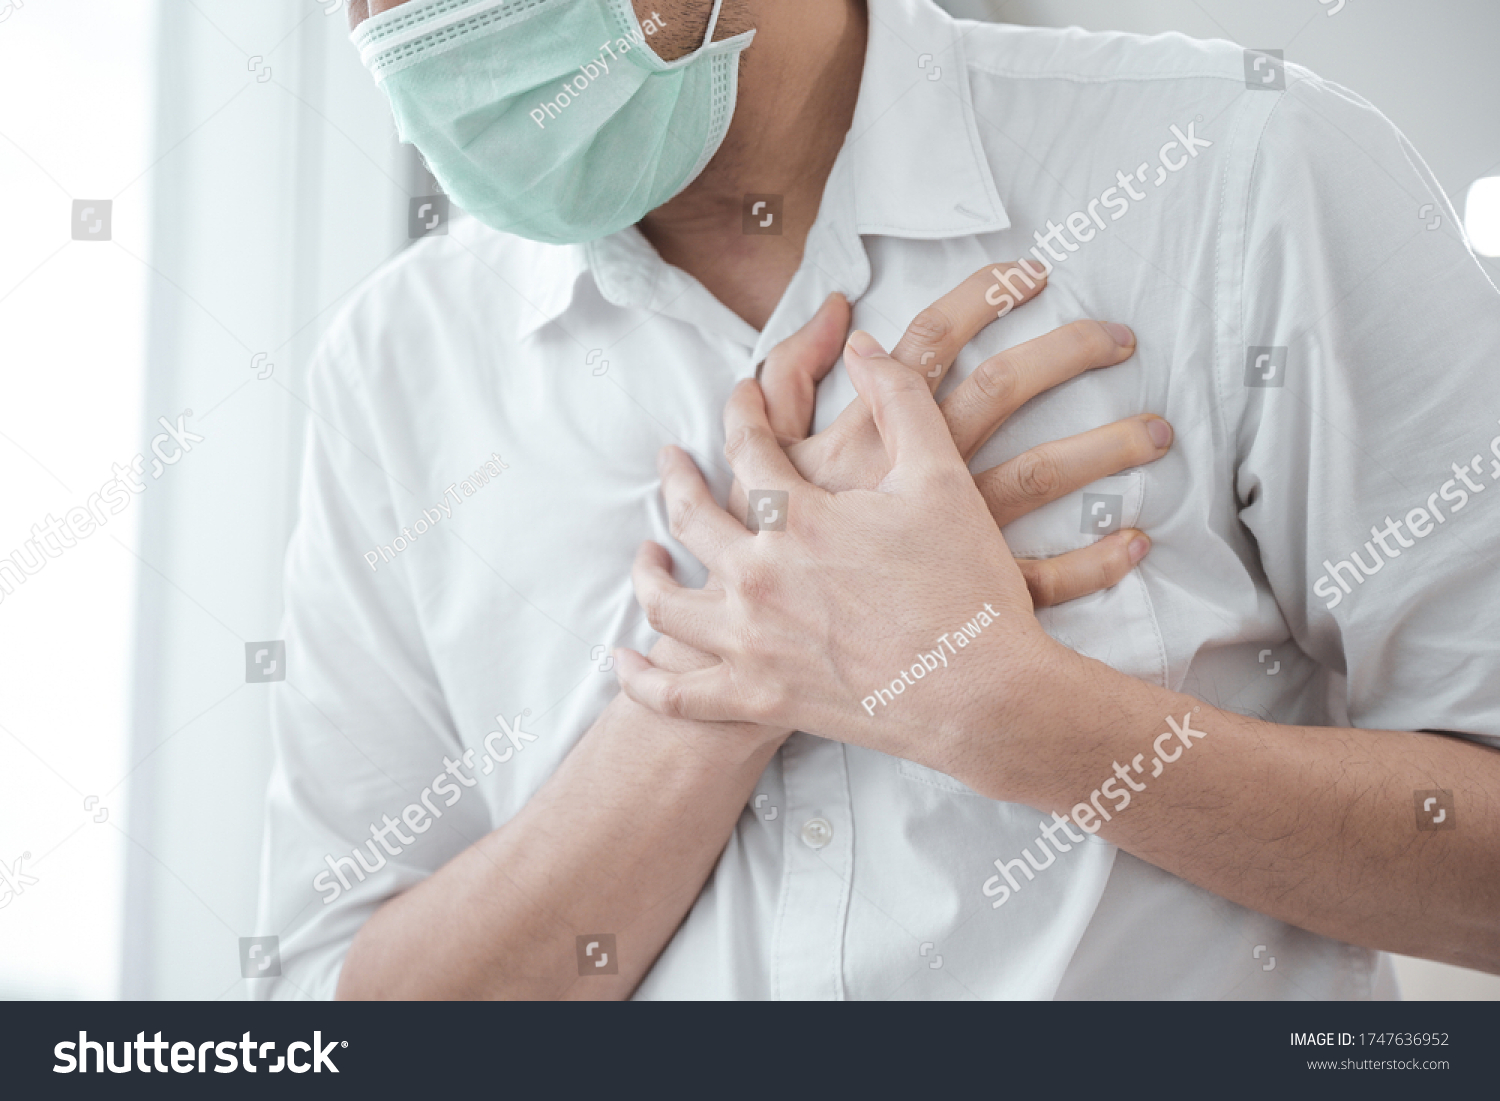 Man wear medical face mask, symptoms of coronavirus diseases, chest pain - heart attack, fever, cough, shortness of breath during work in office, health care concept. #1747636952